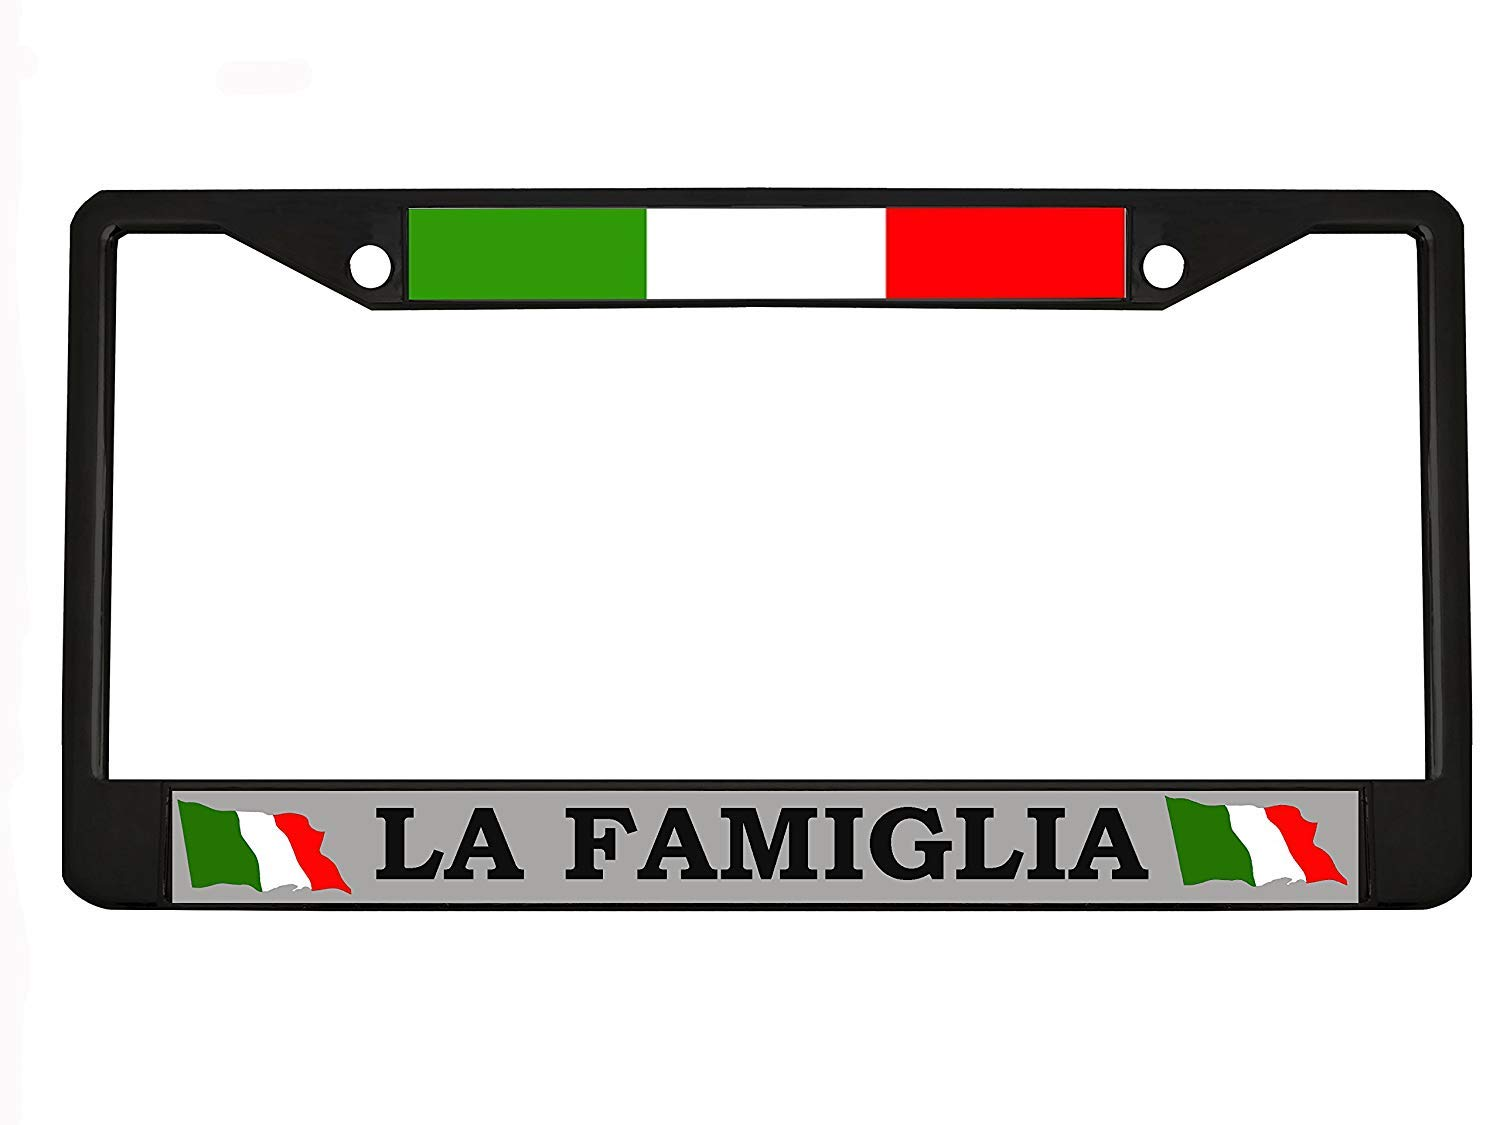 LA FAMIGLIA Personalized Chrome Black License Plate Frames Metal Auto Stainless Car Tag Holder Plate Frame for Womens US(Chrome/Black) B.Fighting